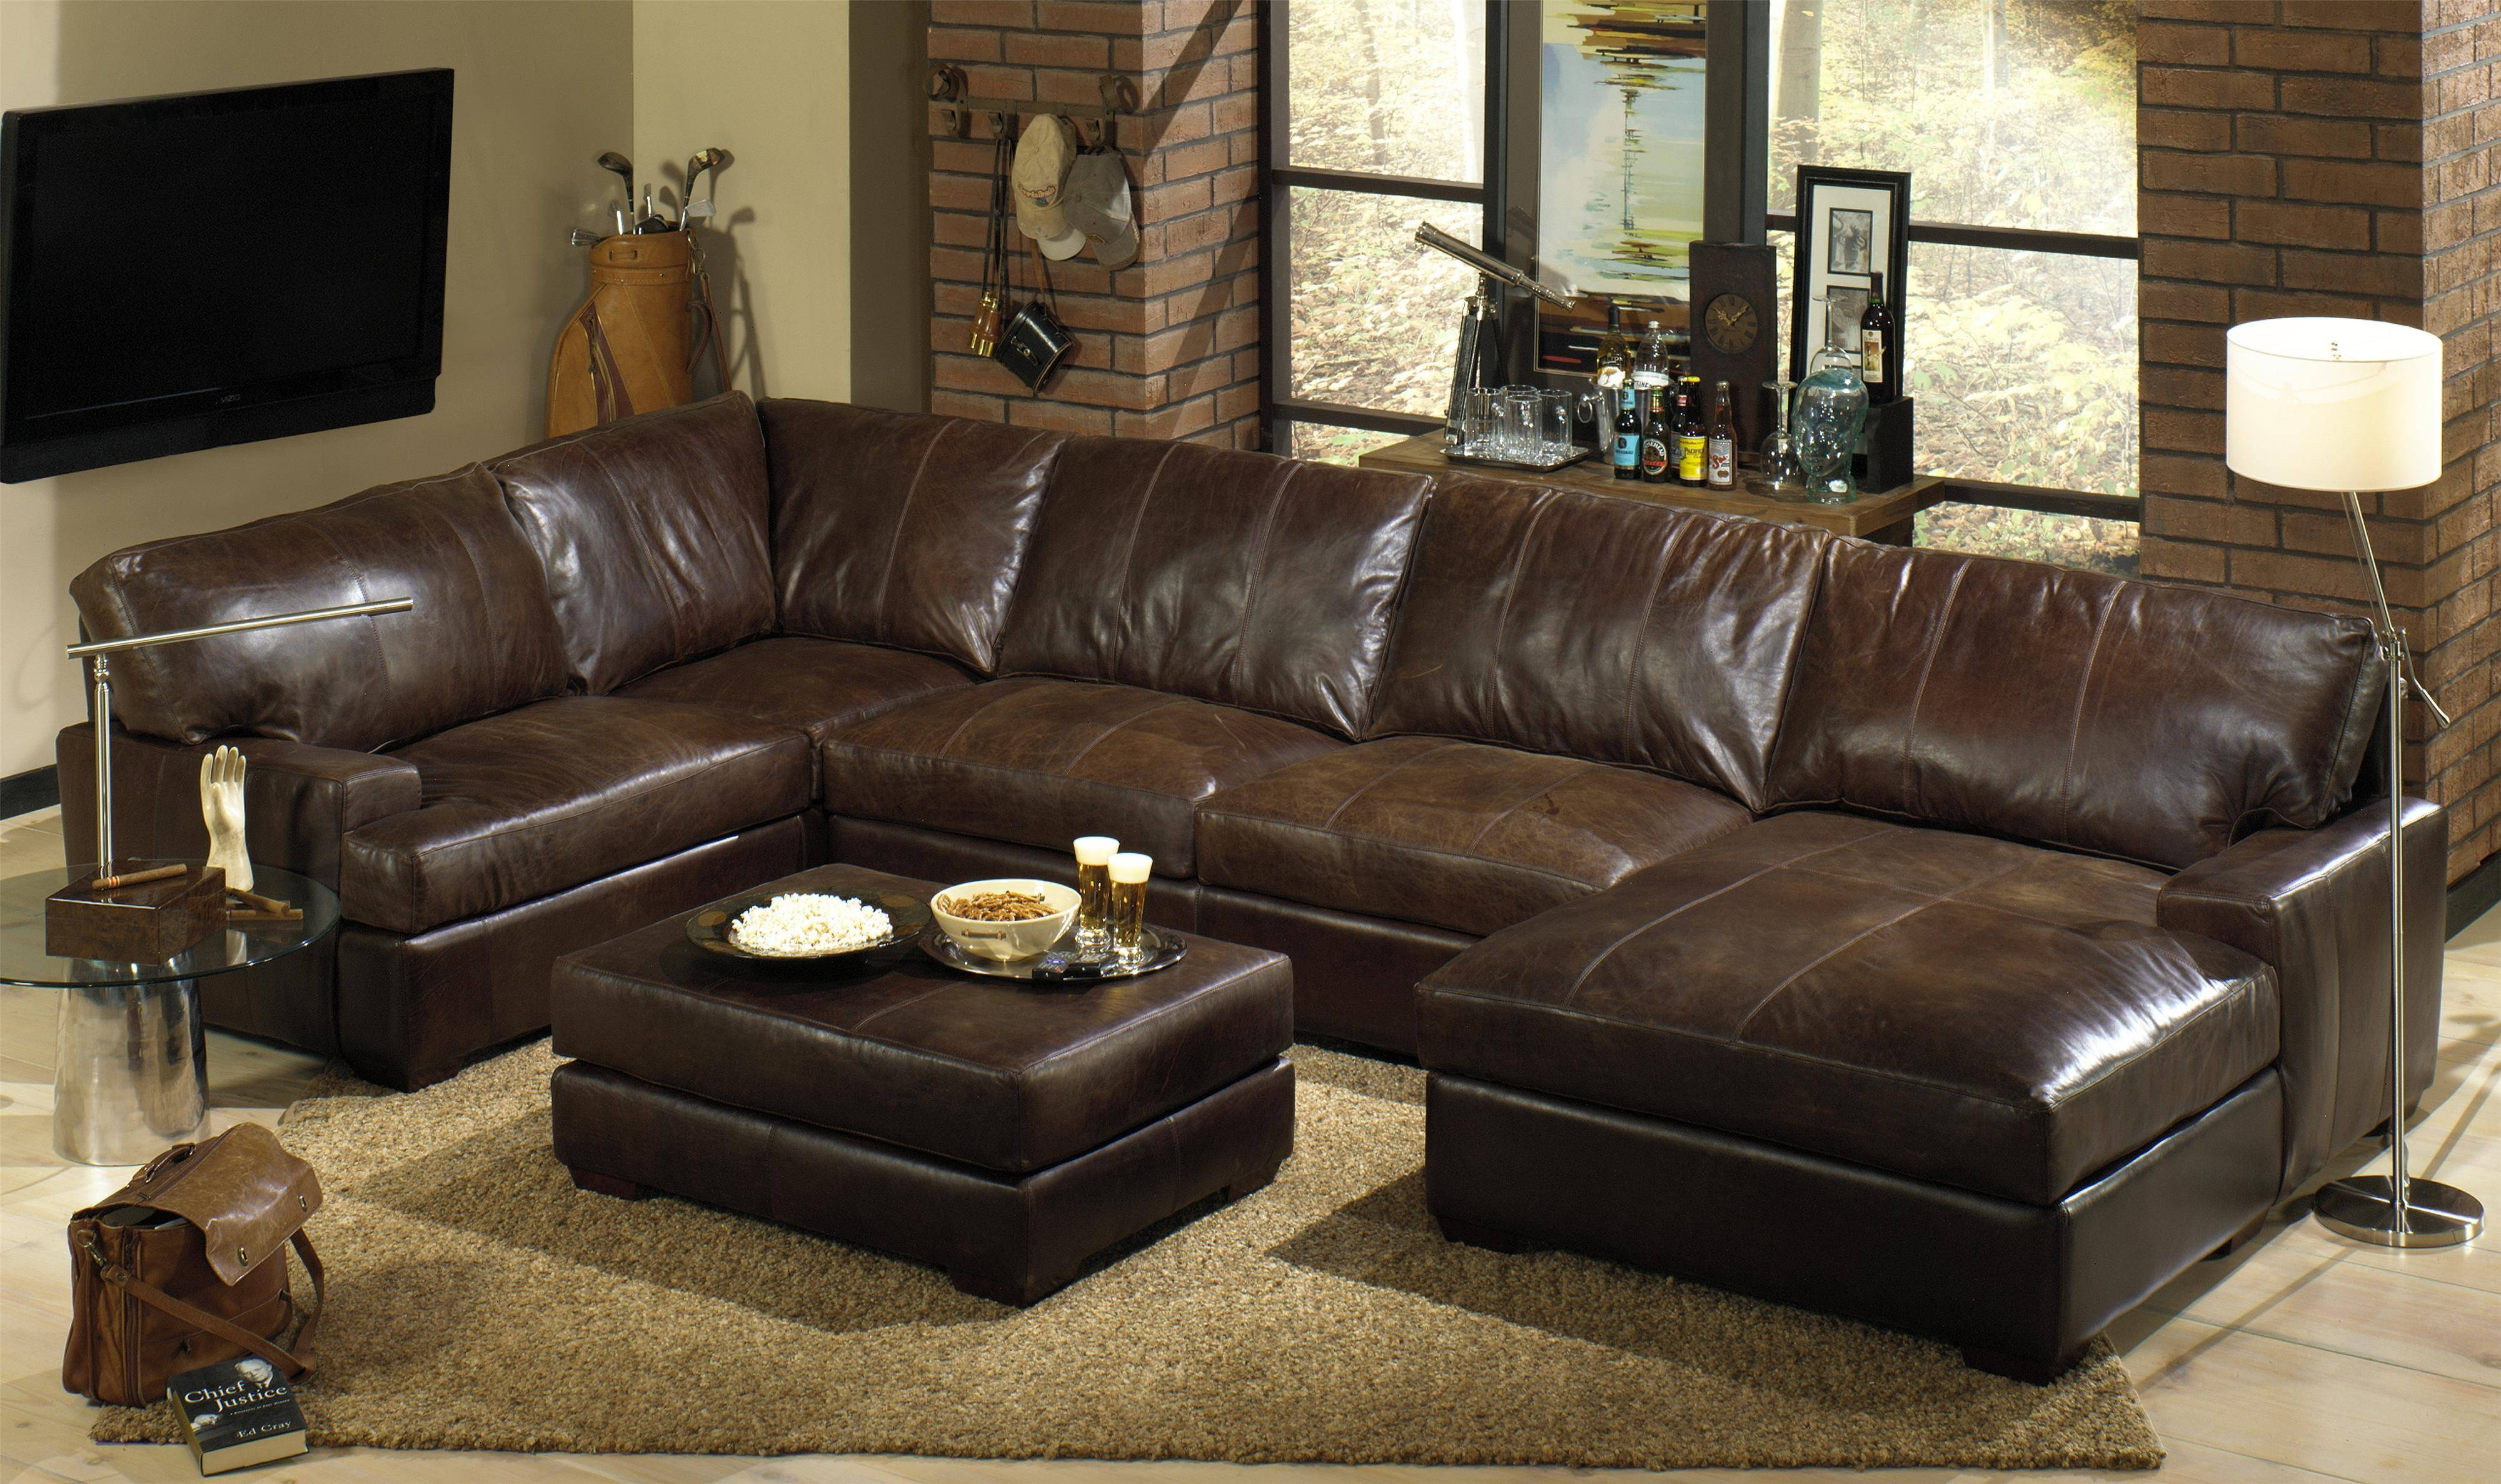 ▻ Furniture : 55 How To Take A Sectional Couch 16235 Landskrona in Comfy Sectional Sofa (Image 30 of 30)